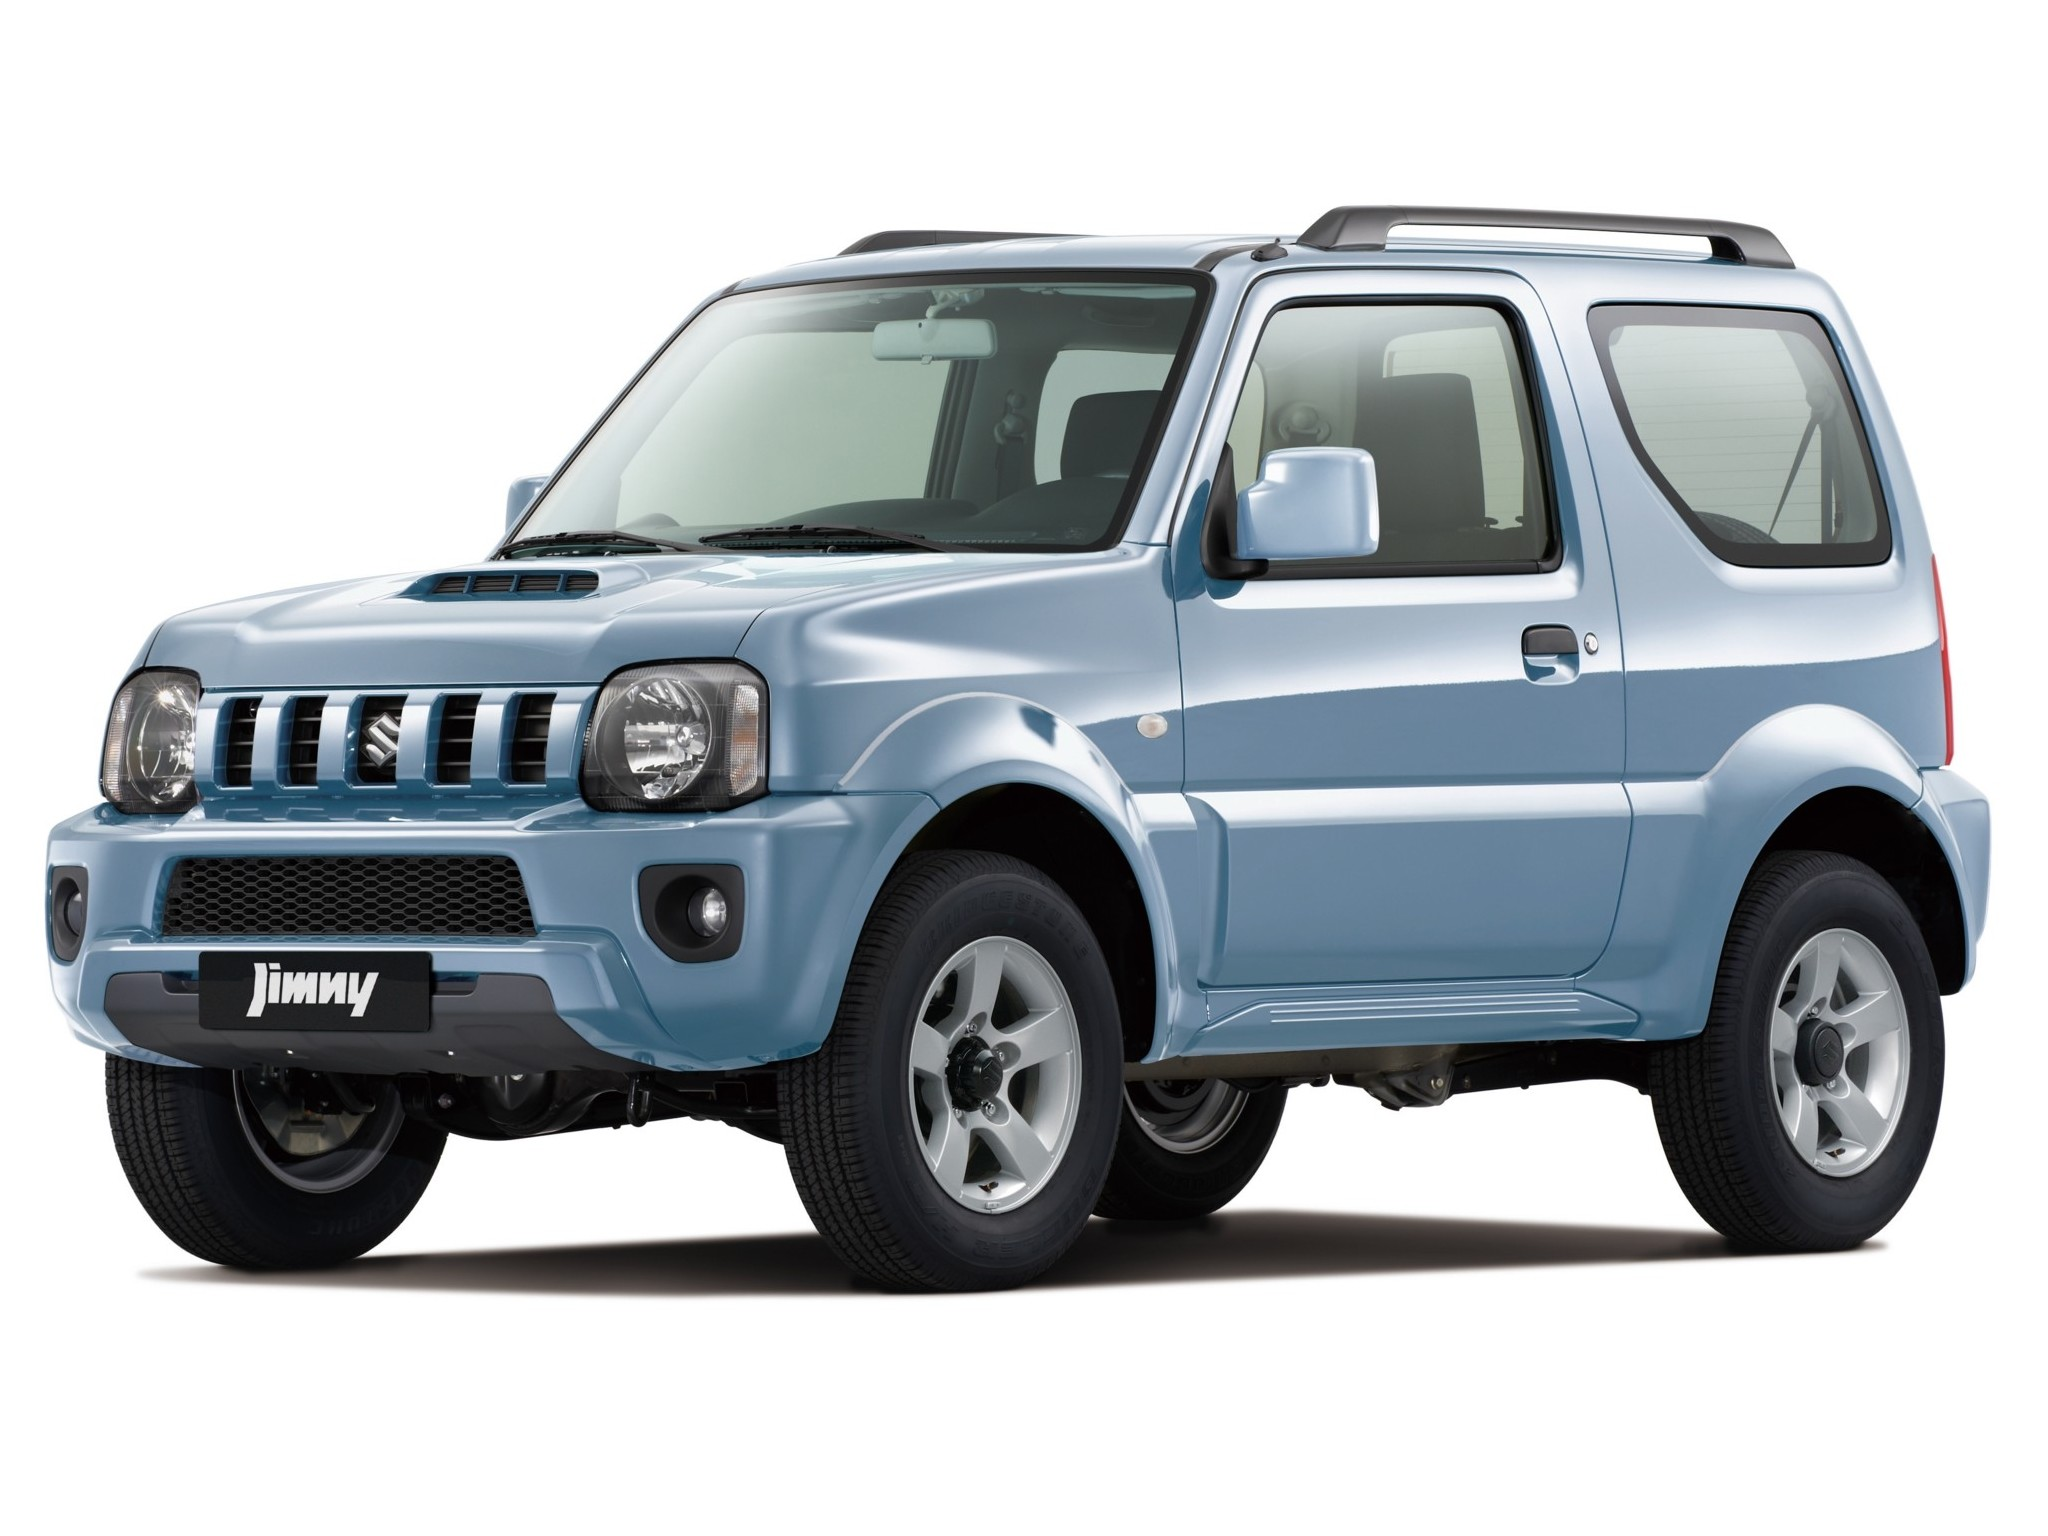 suzuki jimny specs photos 2012 2013 2014 2015 2016 2017 2018 autoevolution. Black Bedroom Furniture Sets. Home Design Ideas